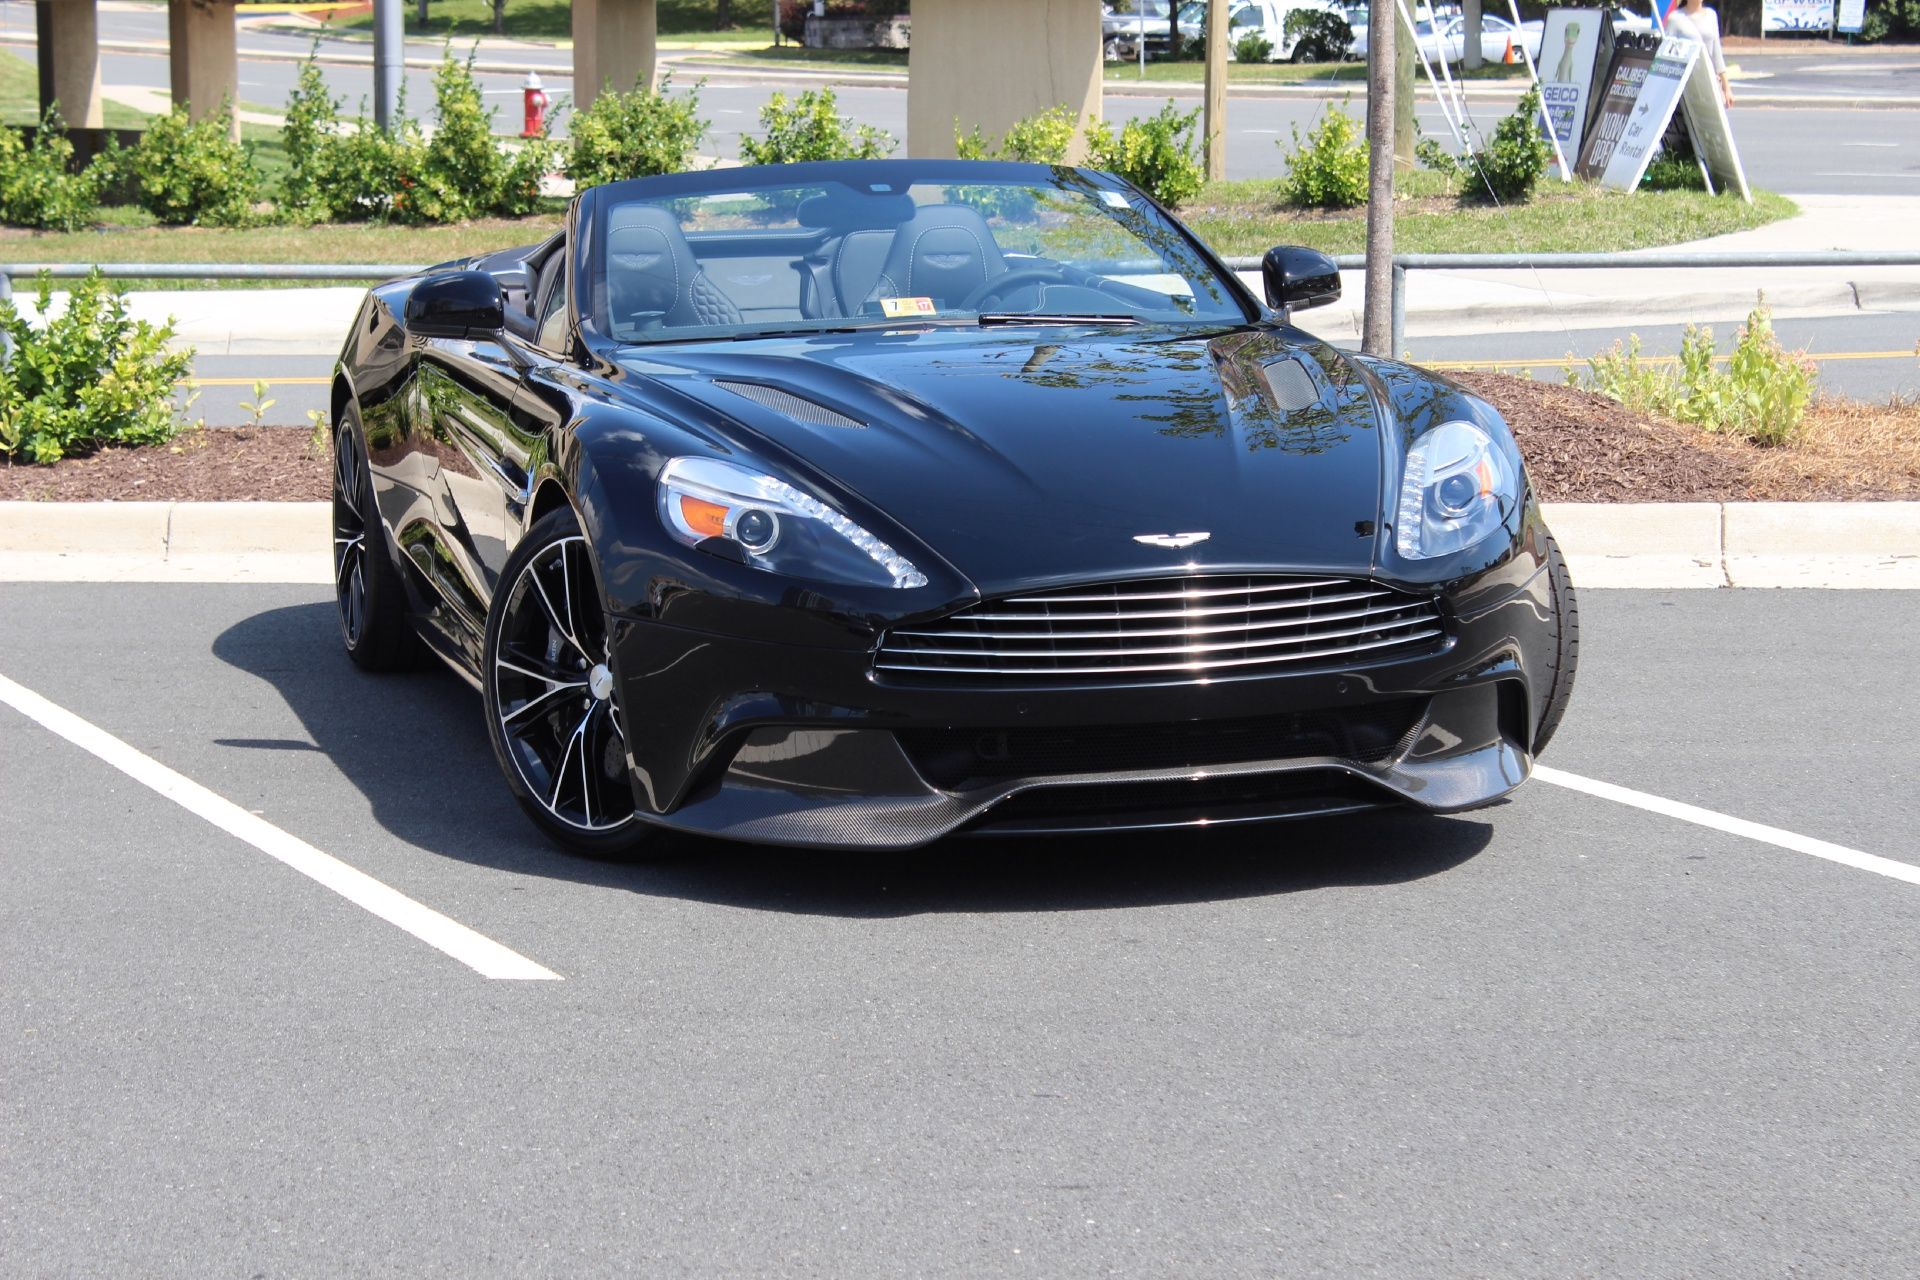 Cool off in the new 2016 Aston Martin Vanquish Volante AstonMartin